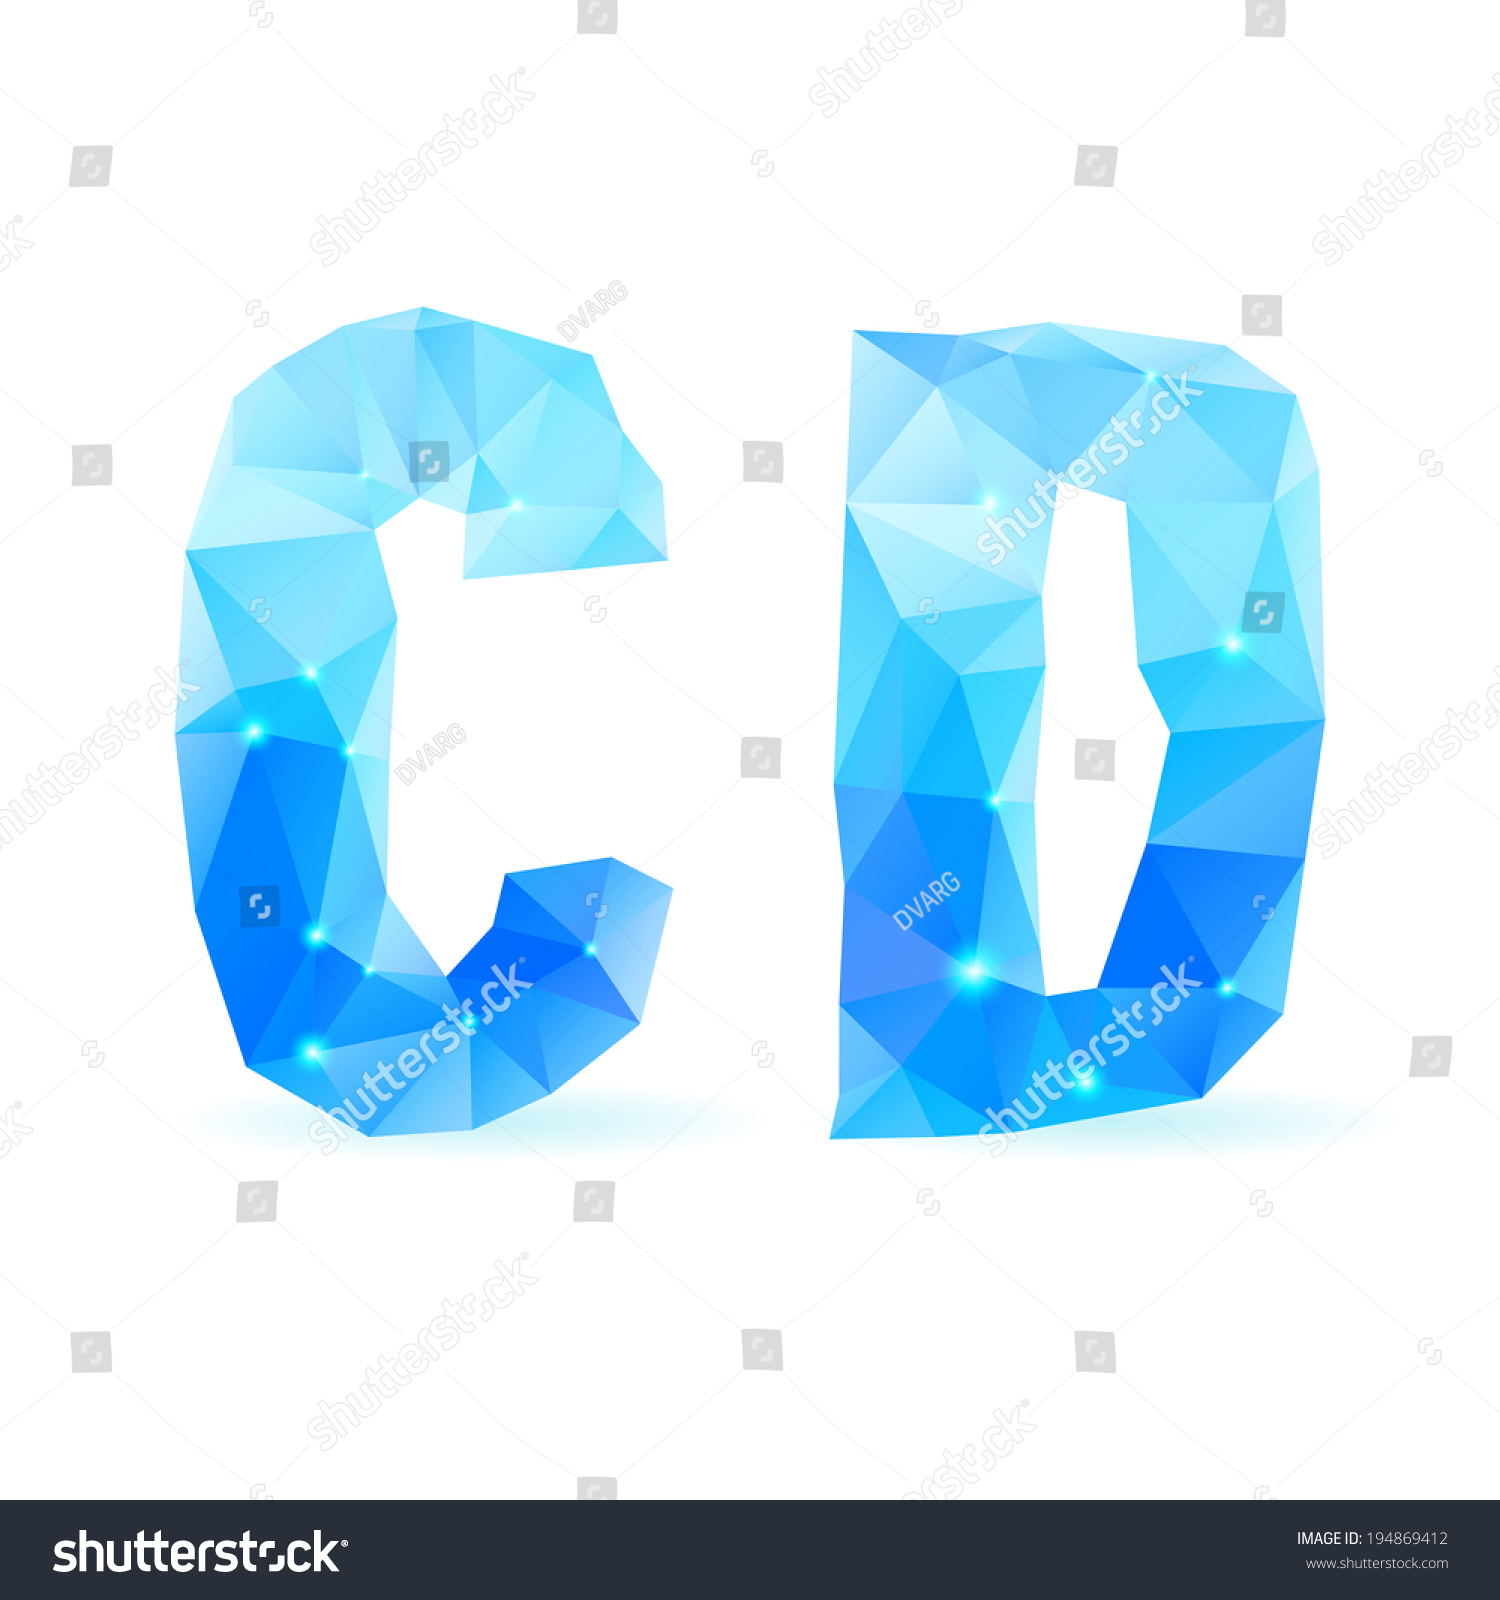 crystal style c and d letters